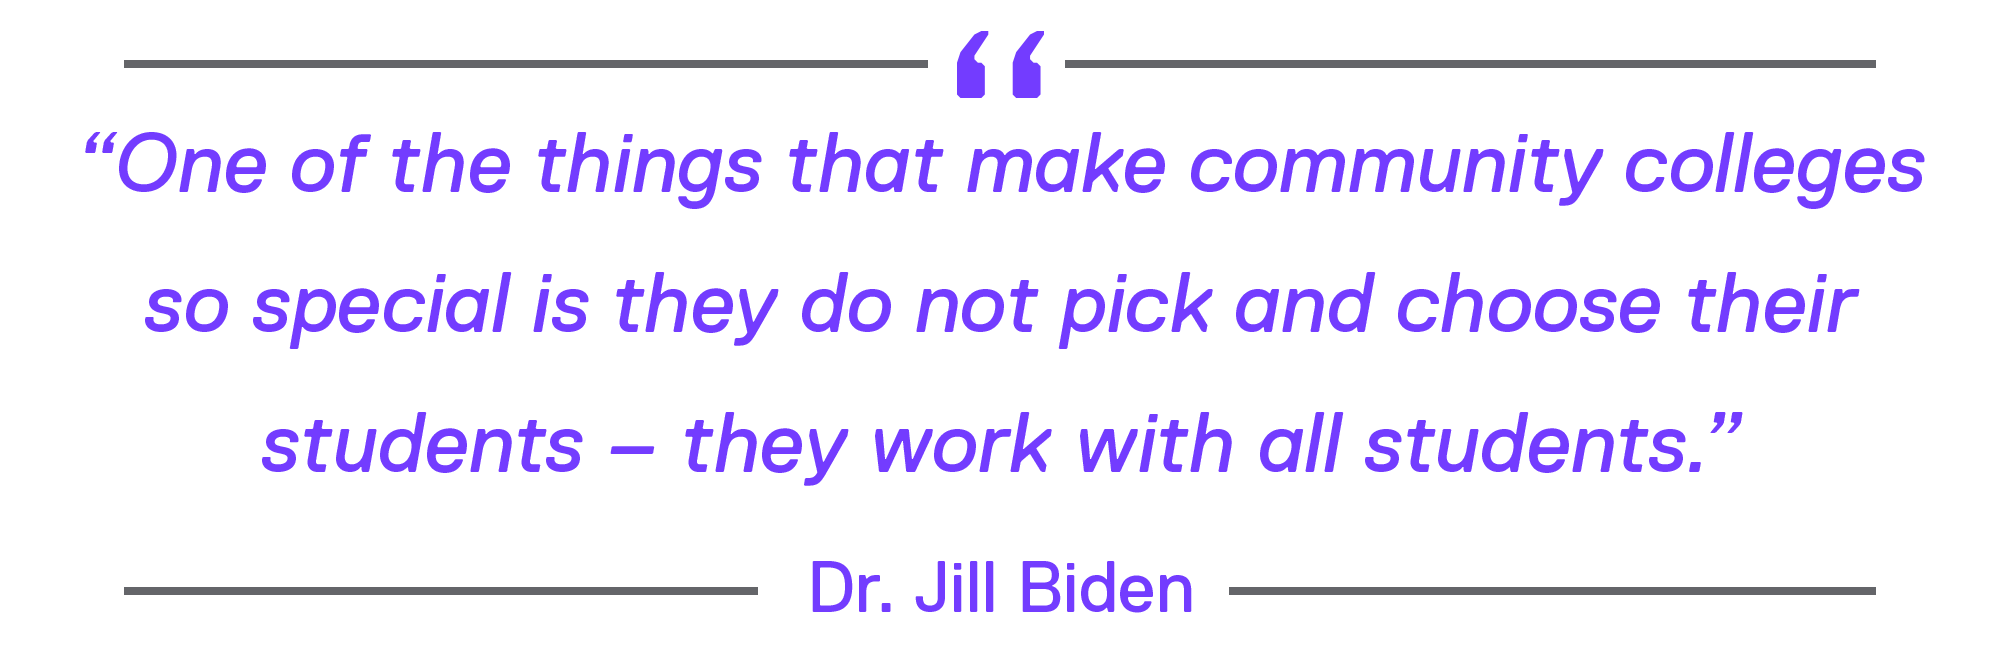 """""""One of the things that make community colleges so special is they do not pick and choose their students – they work with all students."""" by Dr. Jill Biden"""